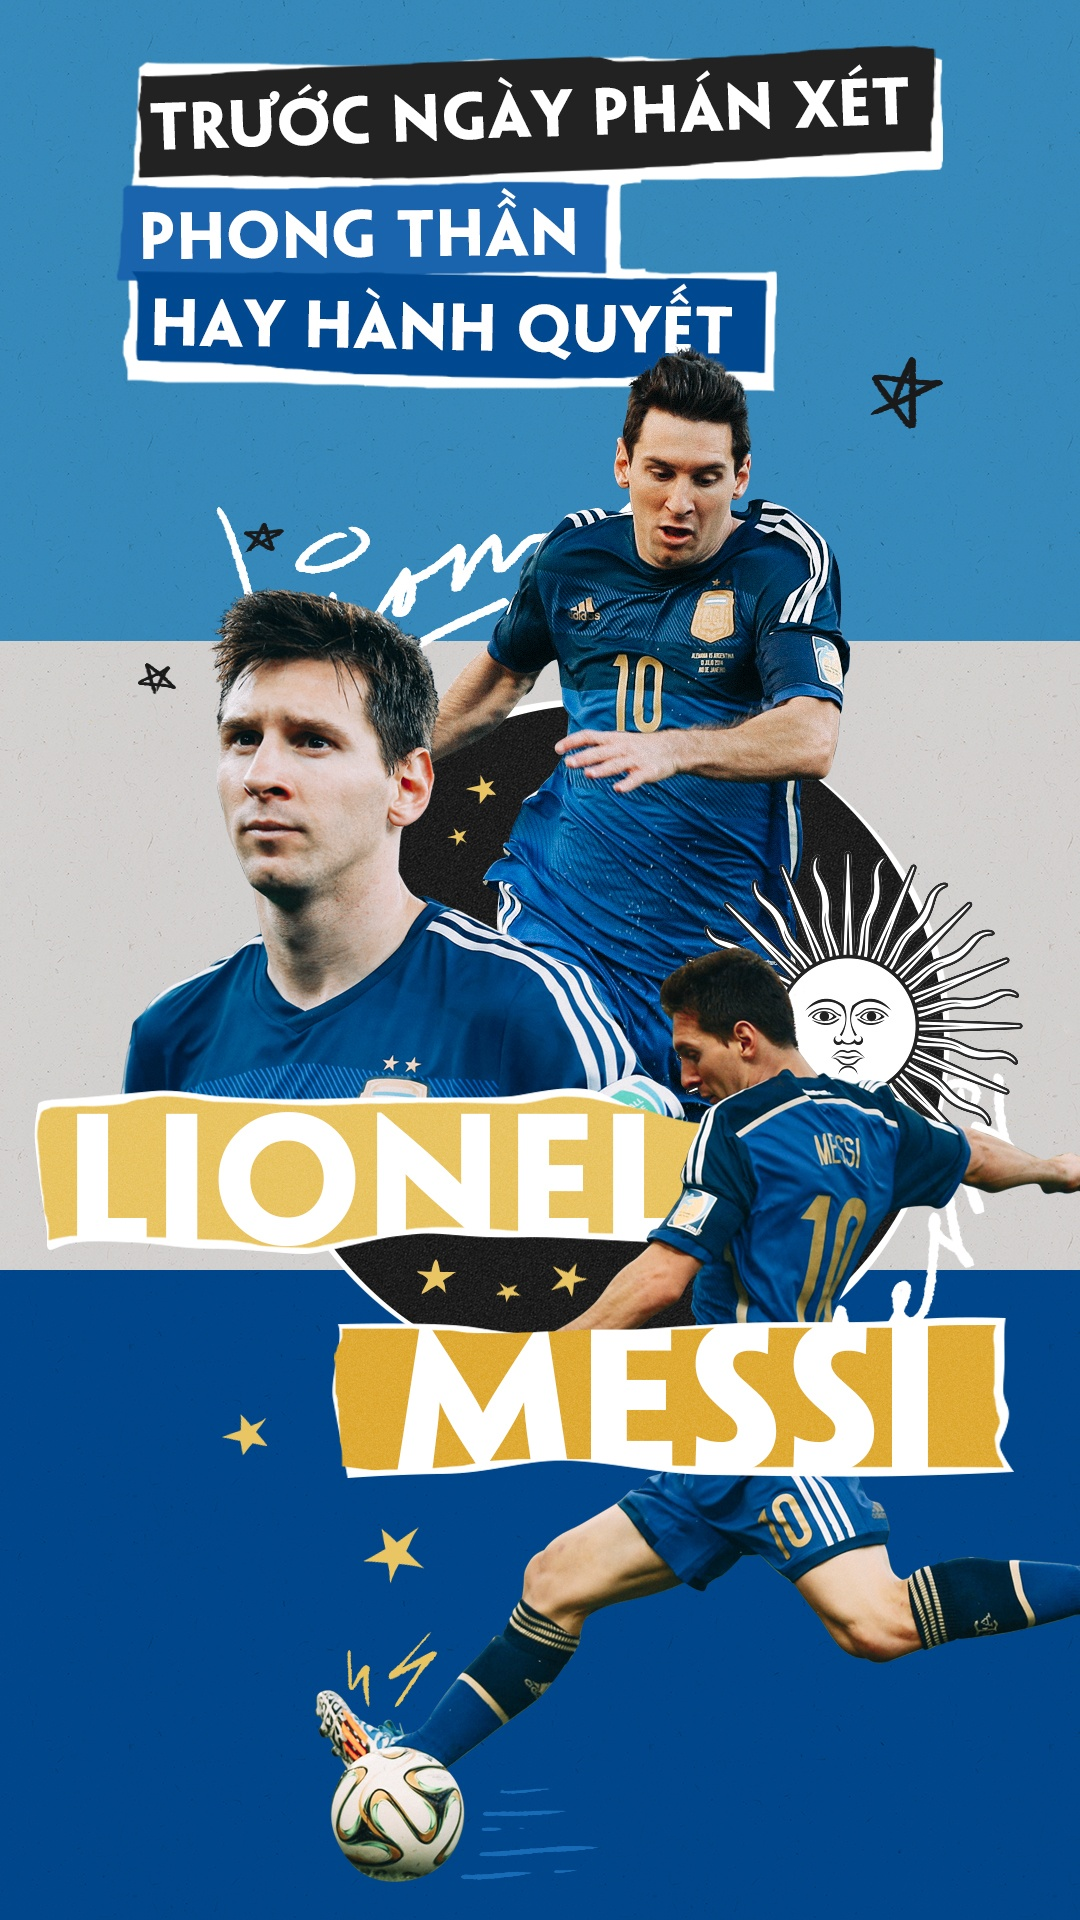 Lionel Messi truoc ngay phan quyet anh 1